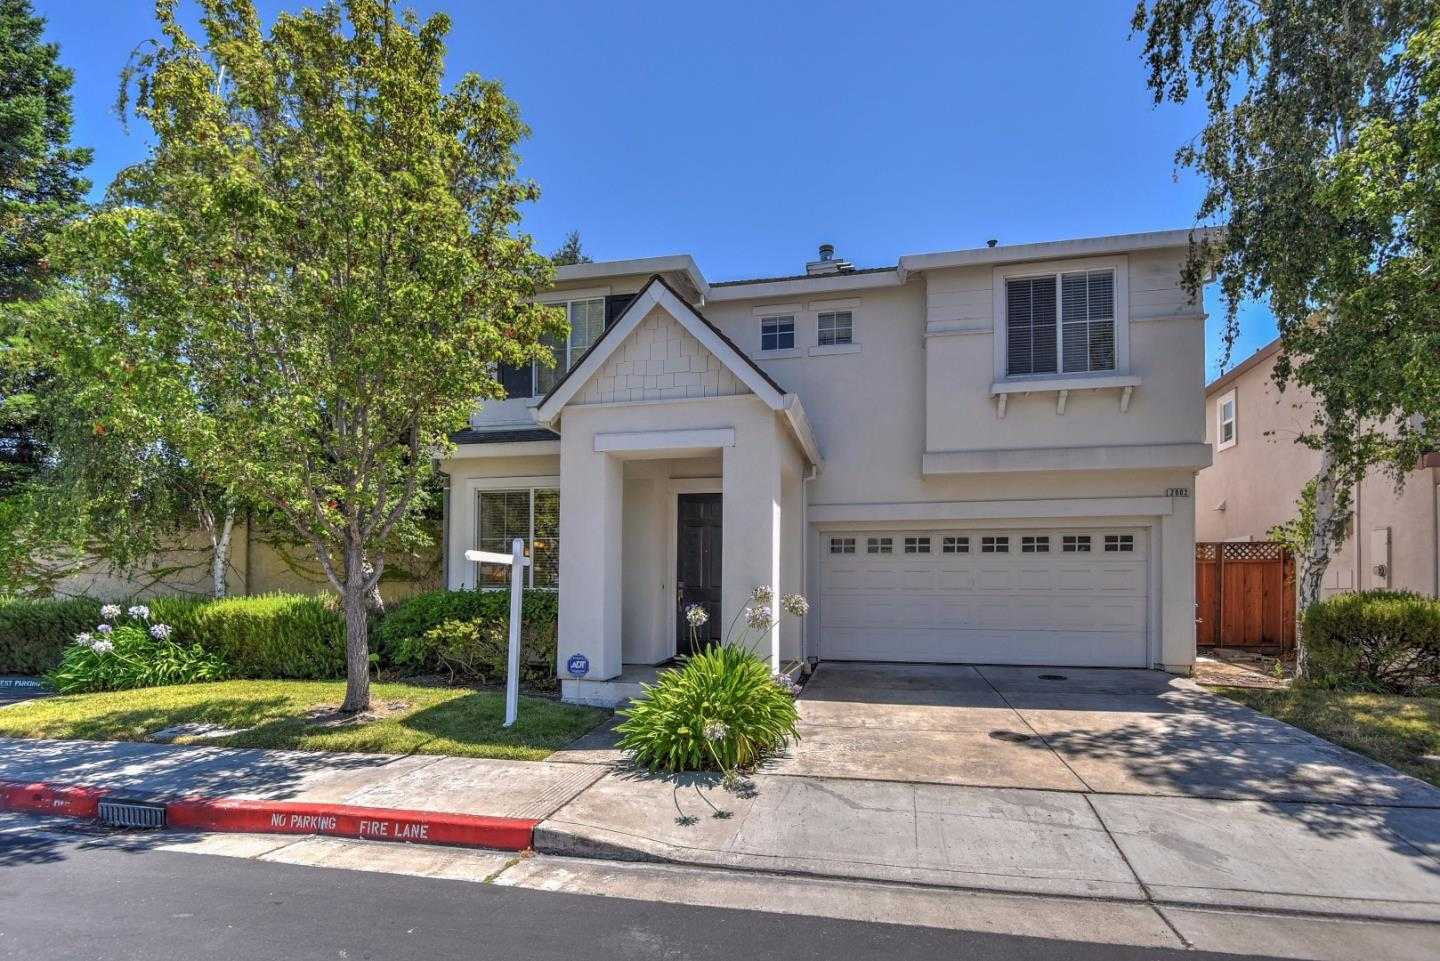 $1,400,000 - 4Br/3Ba -  for Sale in Santa Clara